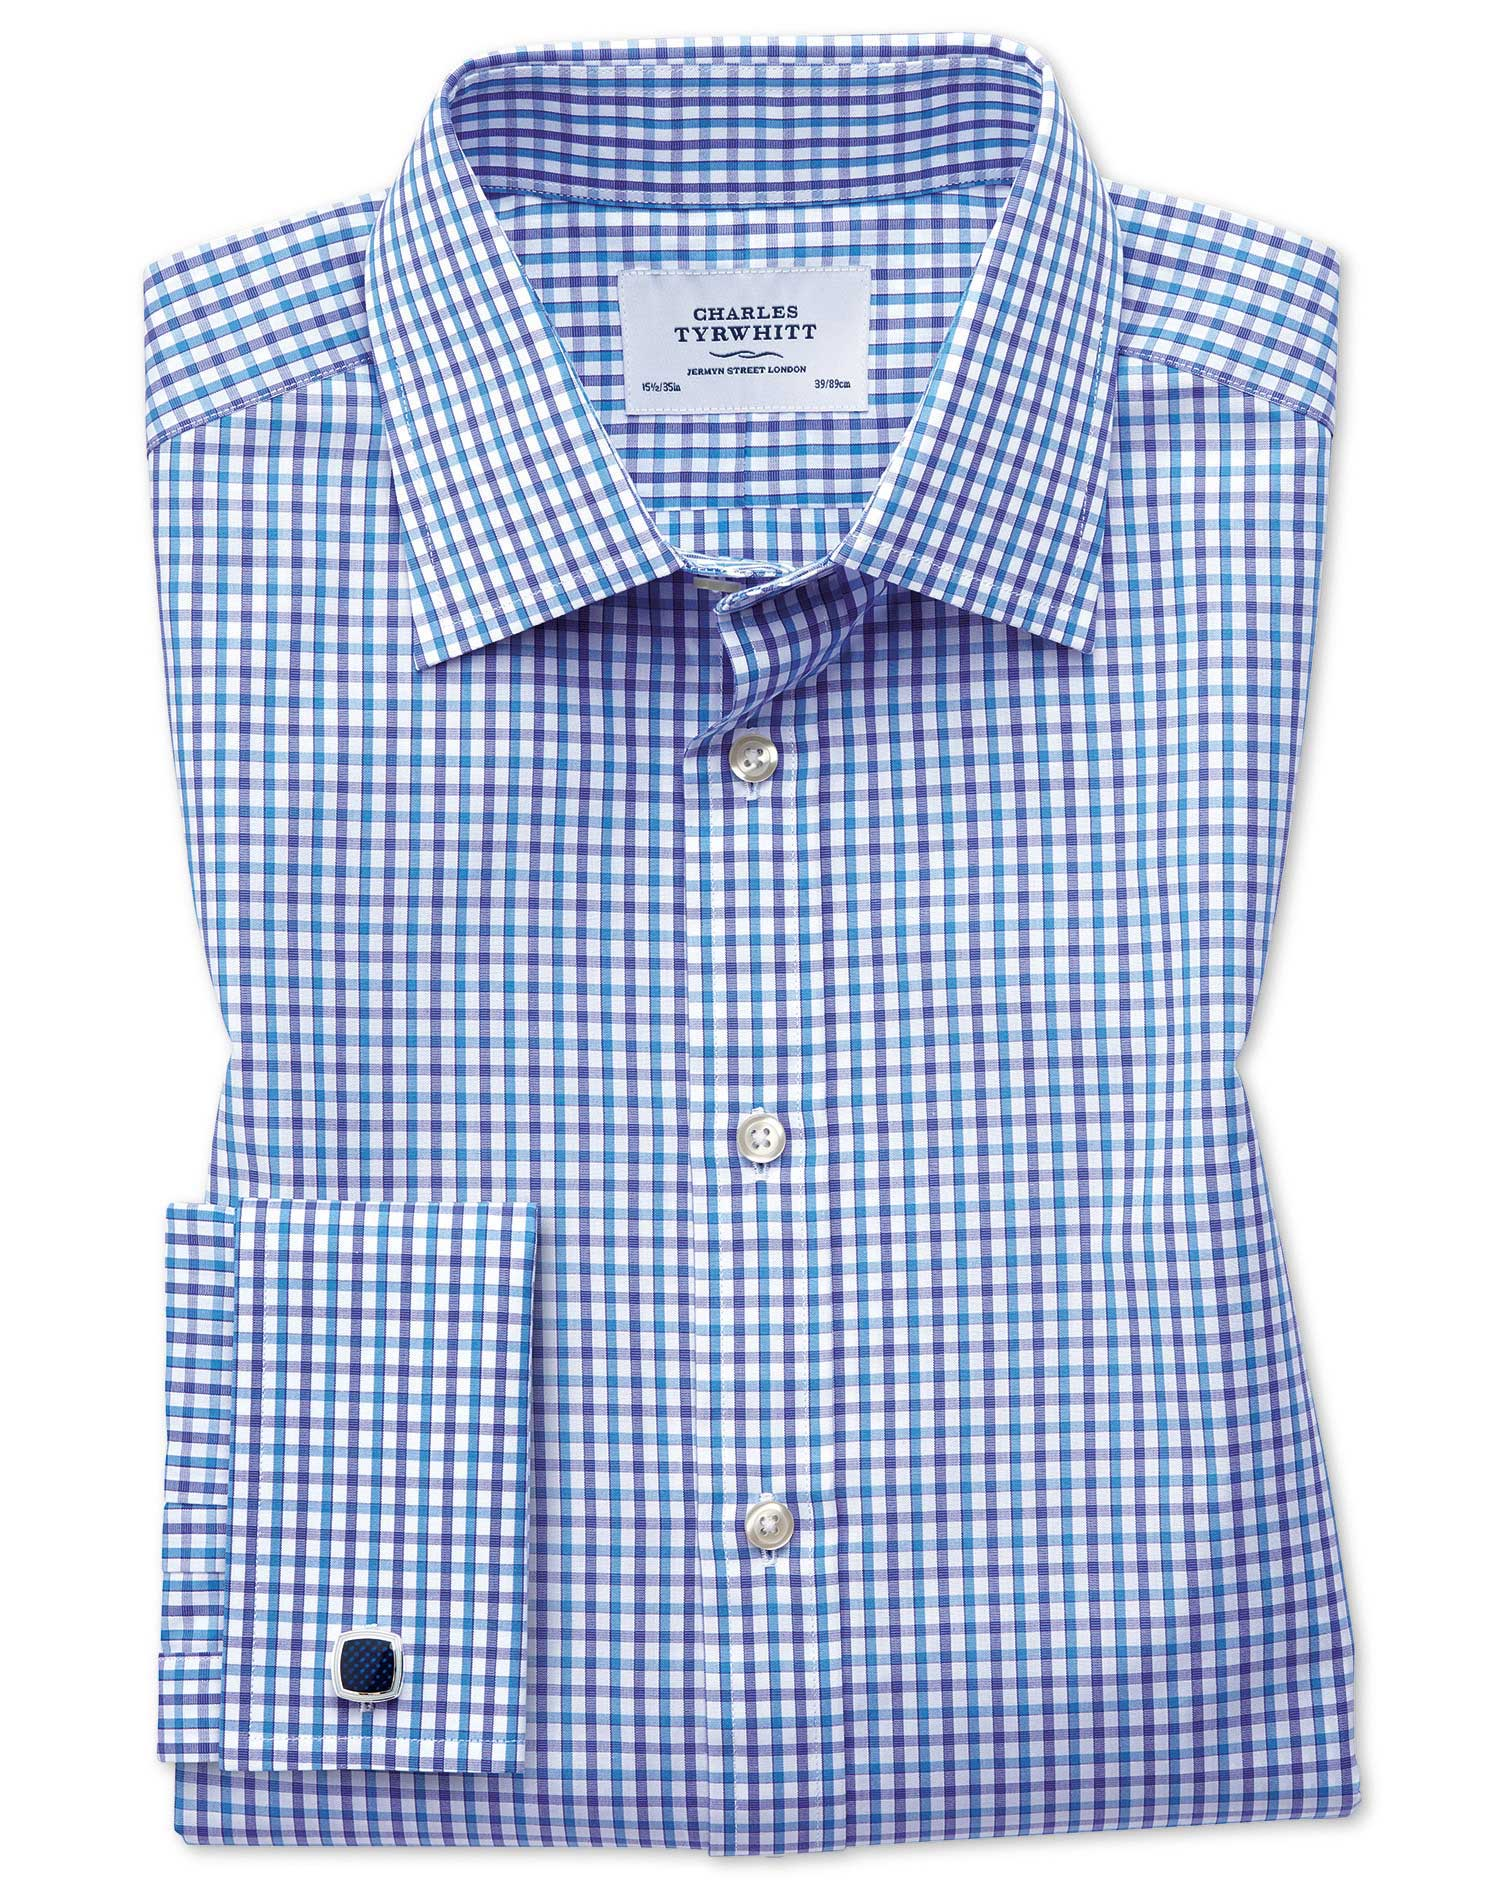 Classic Fit Two Colour Check Blue Cotton Formal Shirt Double Cuff Size 15.5/35 by Charles Tyrwhitt